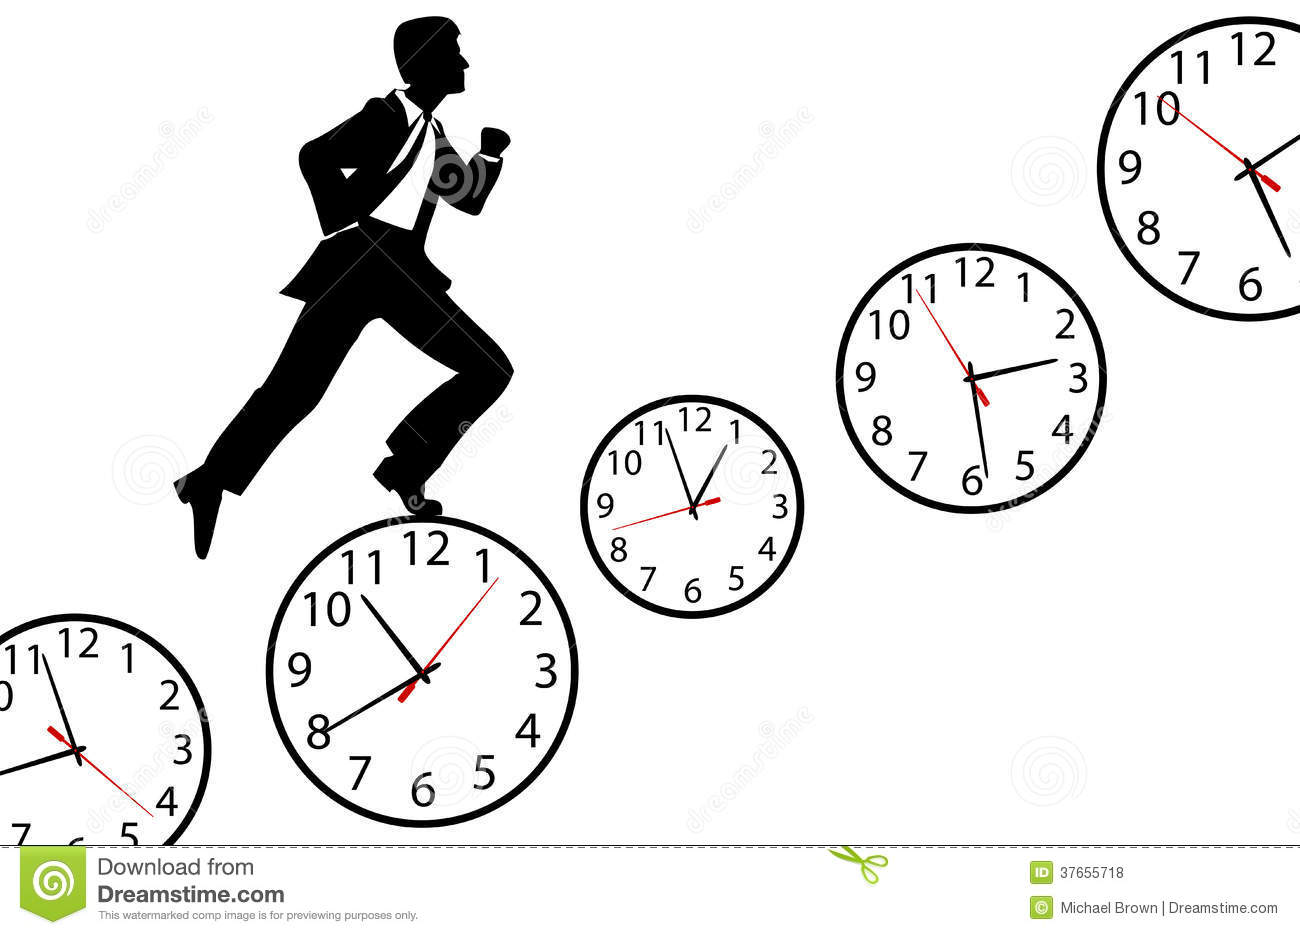 Enjoyable Note Memos Busy Day Time Clock Stock Vector Image 42426820 Easy Diy Christmas Decorations Tissureus